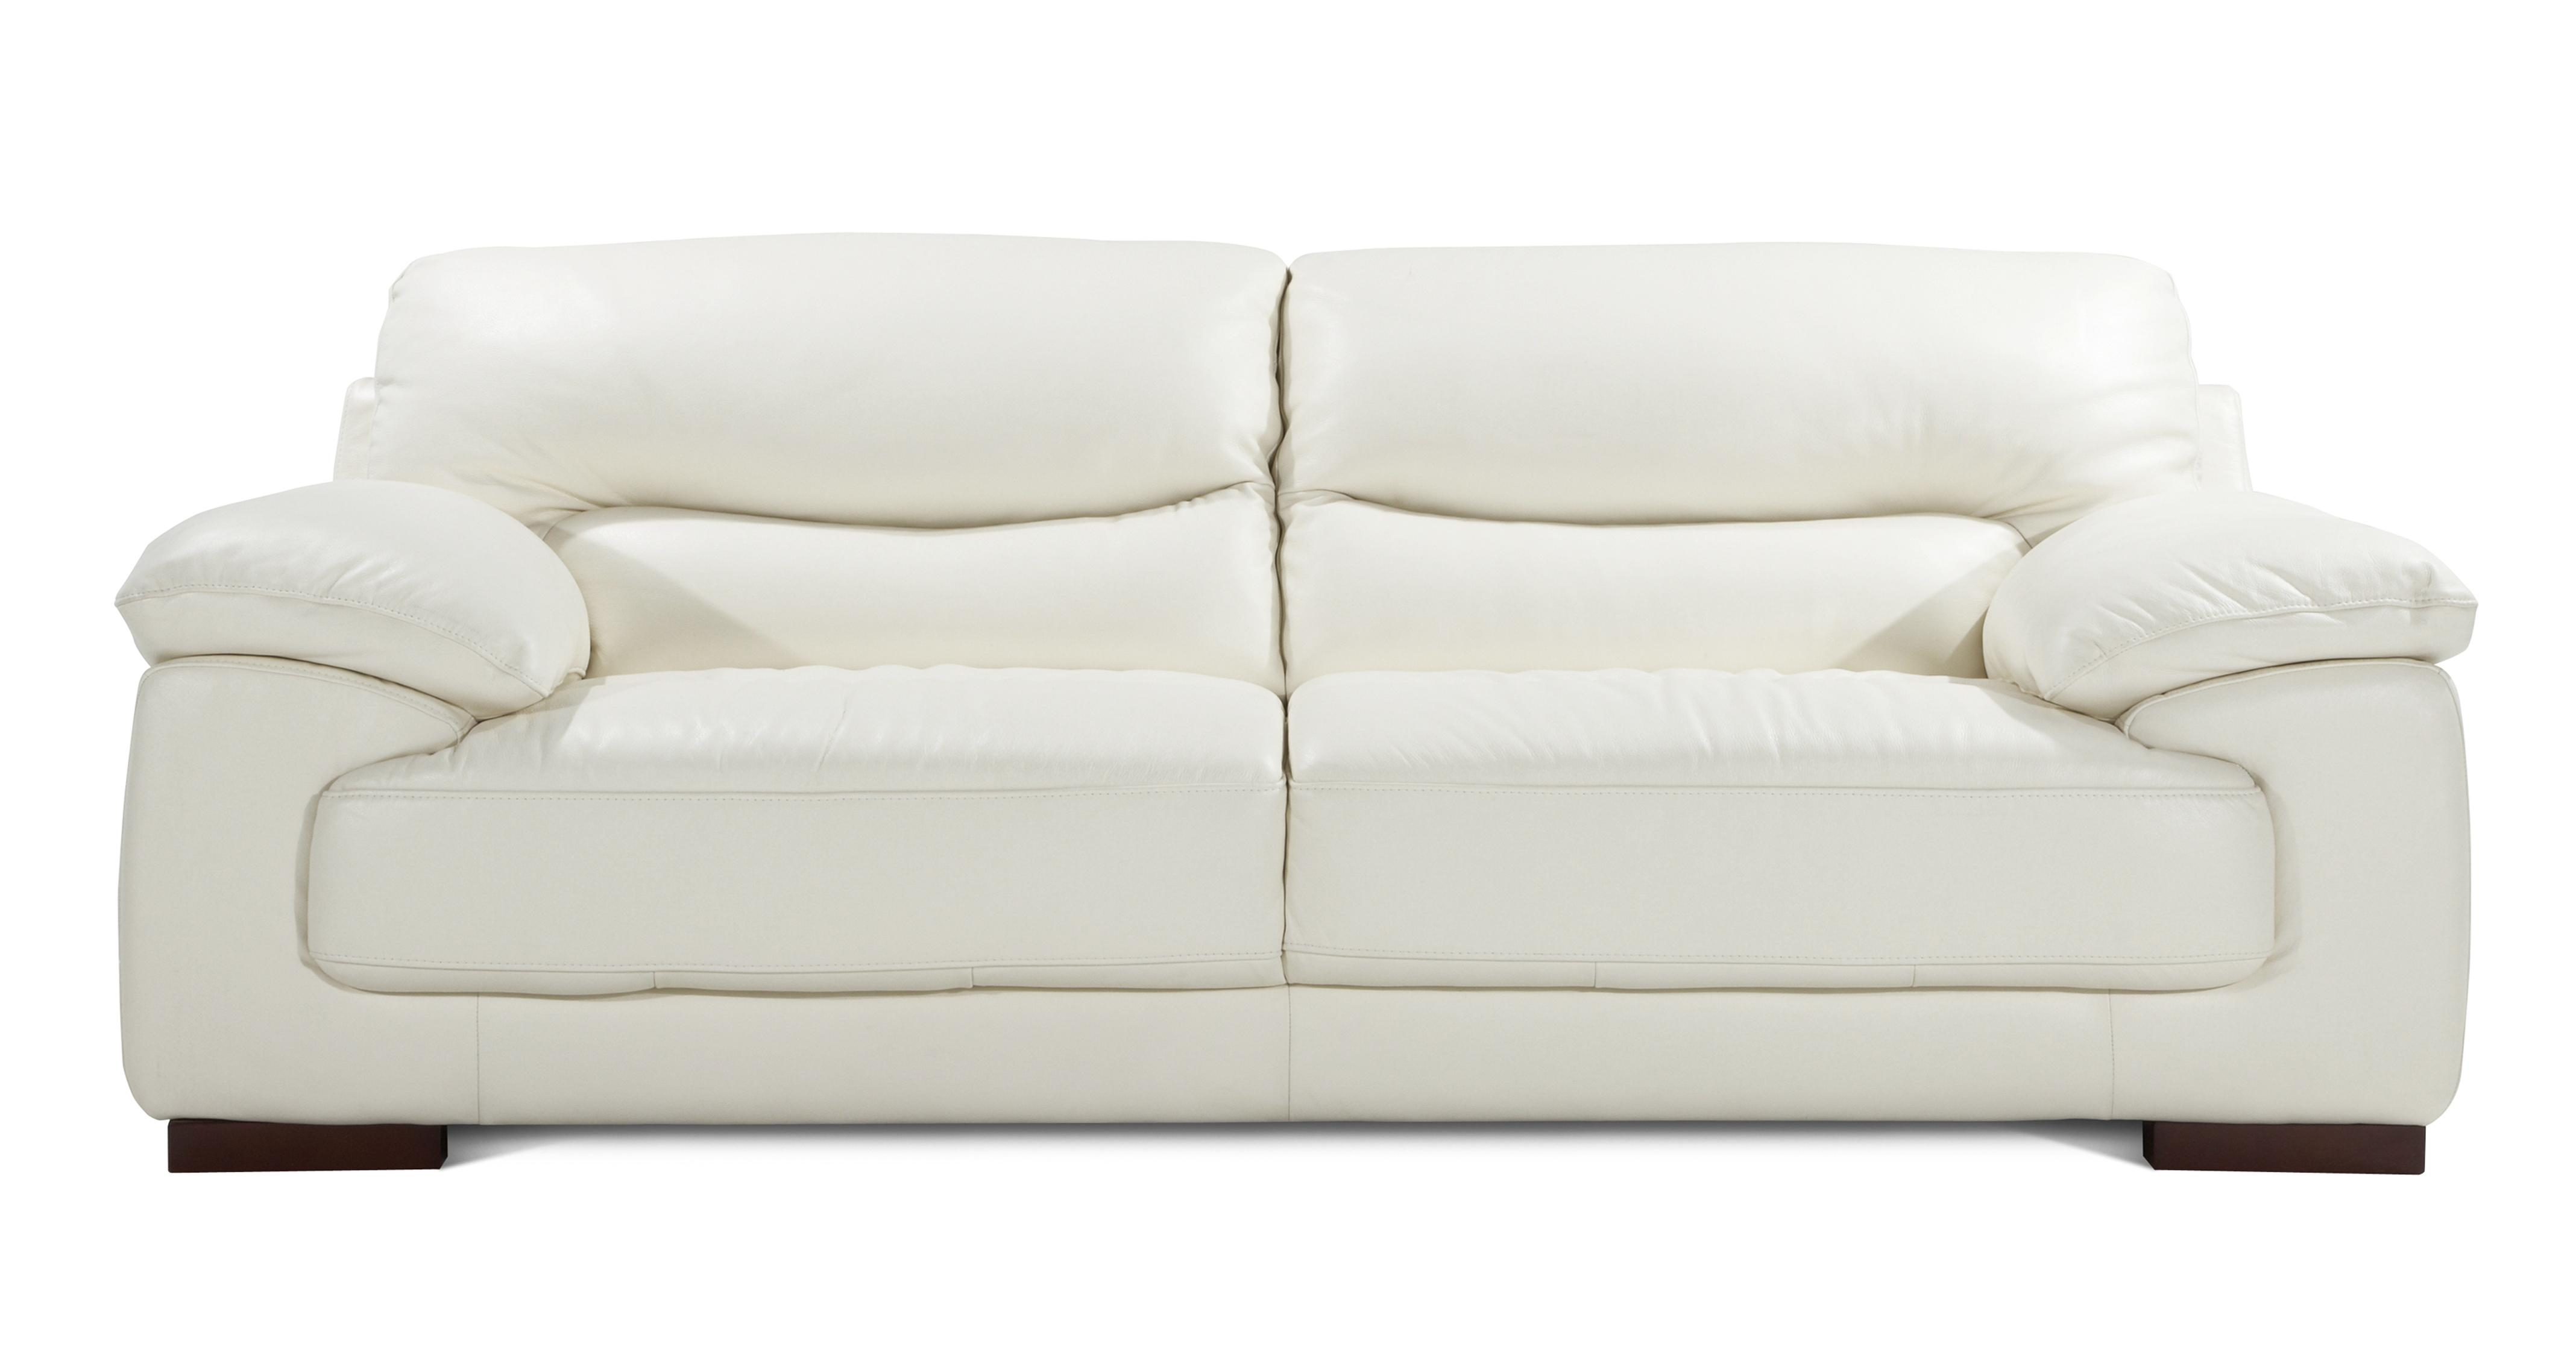 DFS Dazzle Set Inc Magnolia Real Leather 3 Seater Sofa 2 Seater